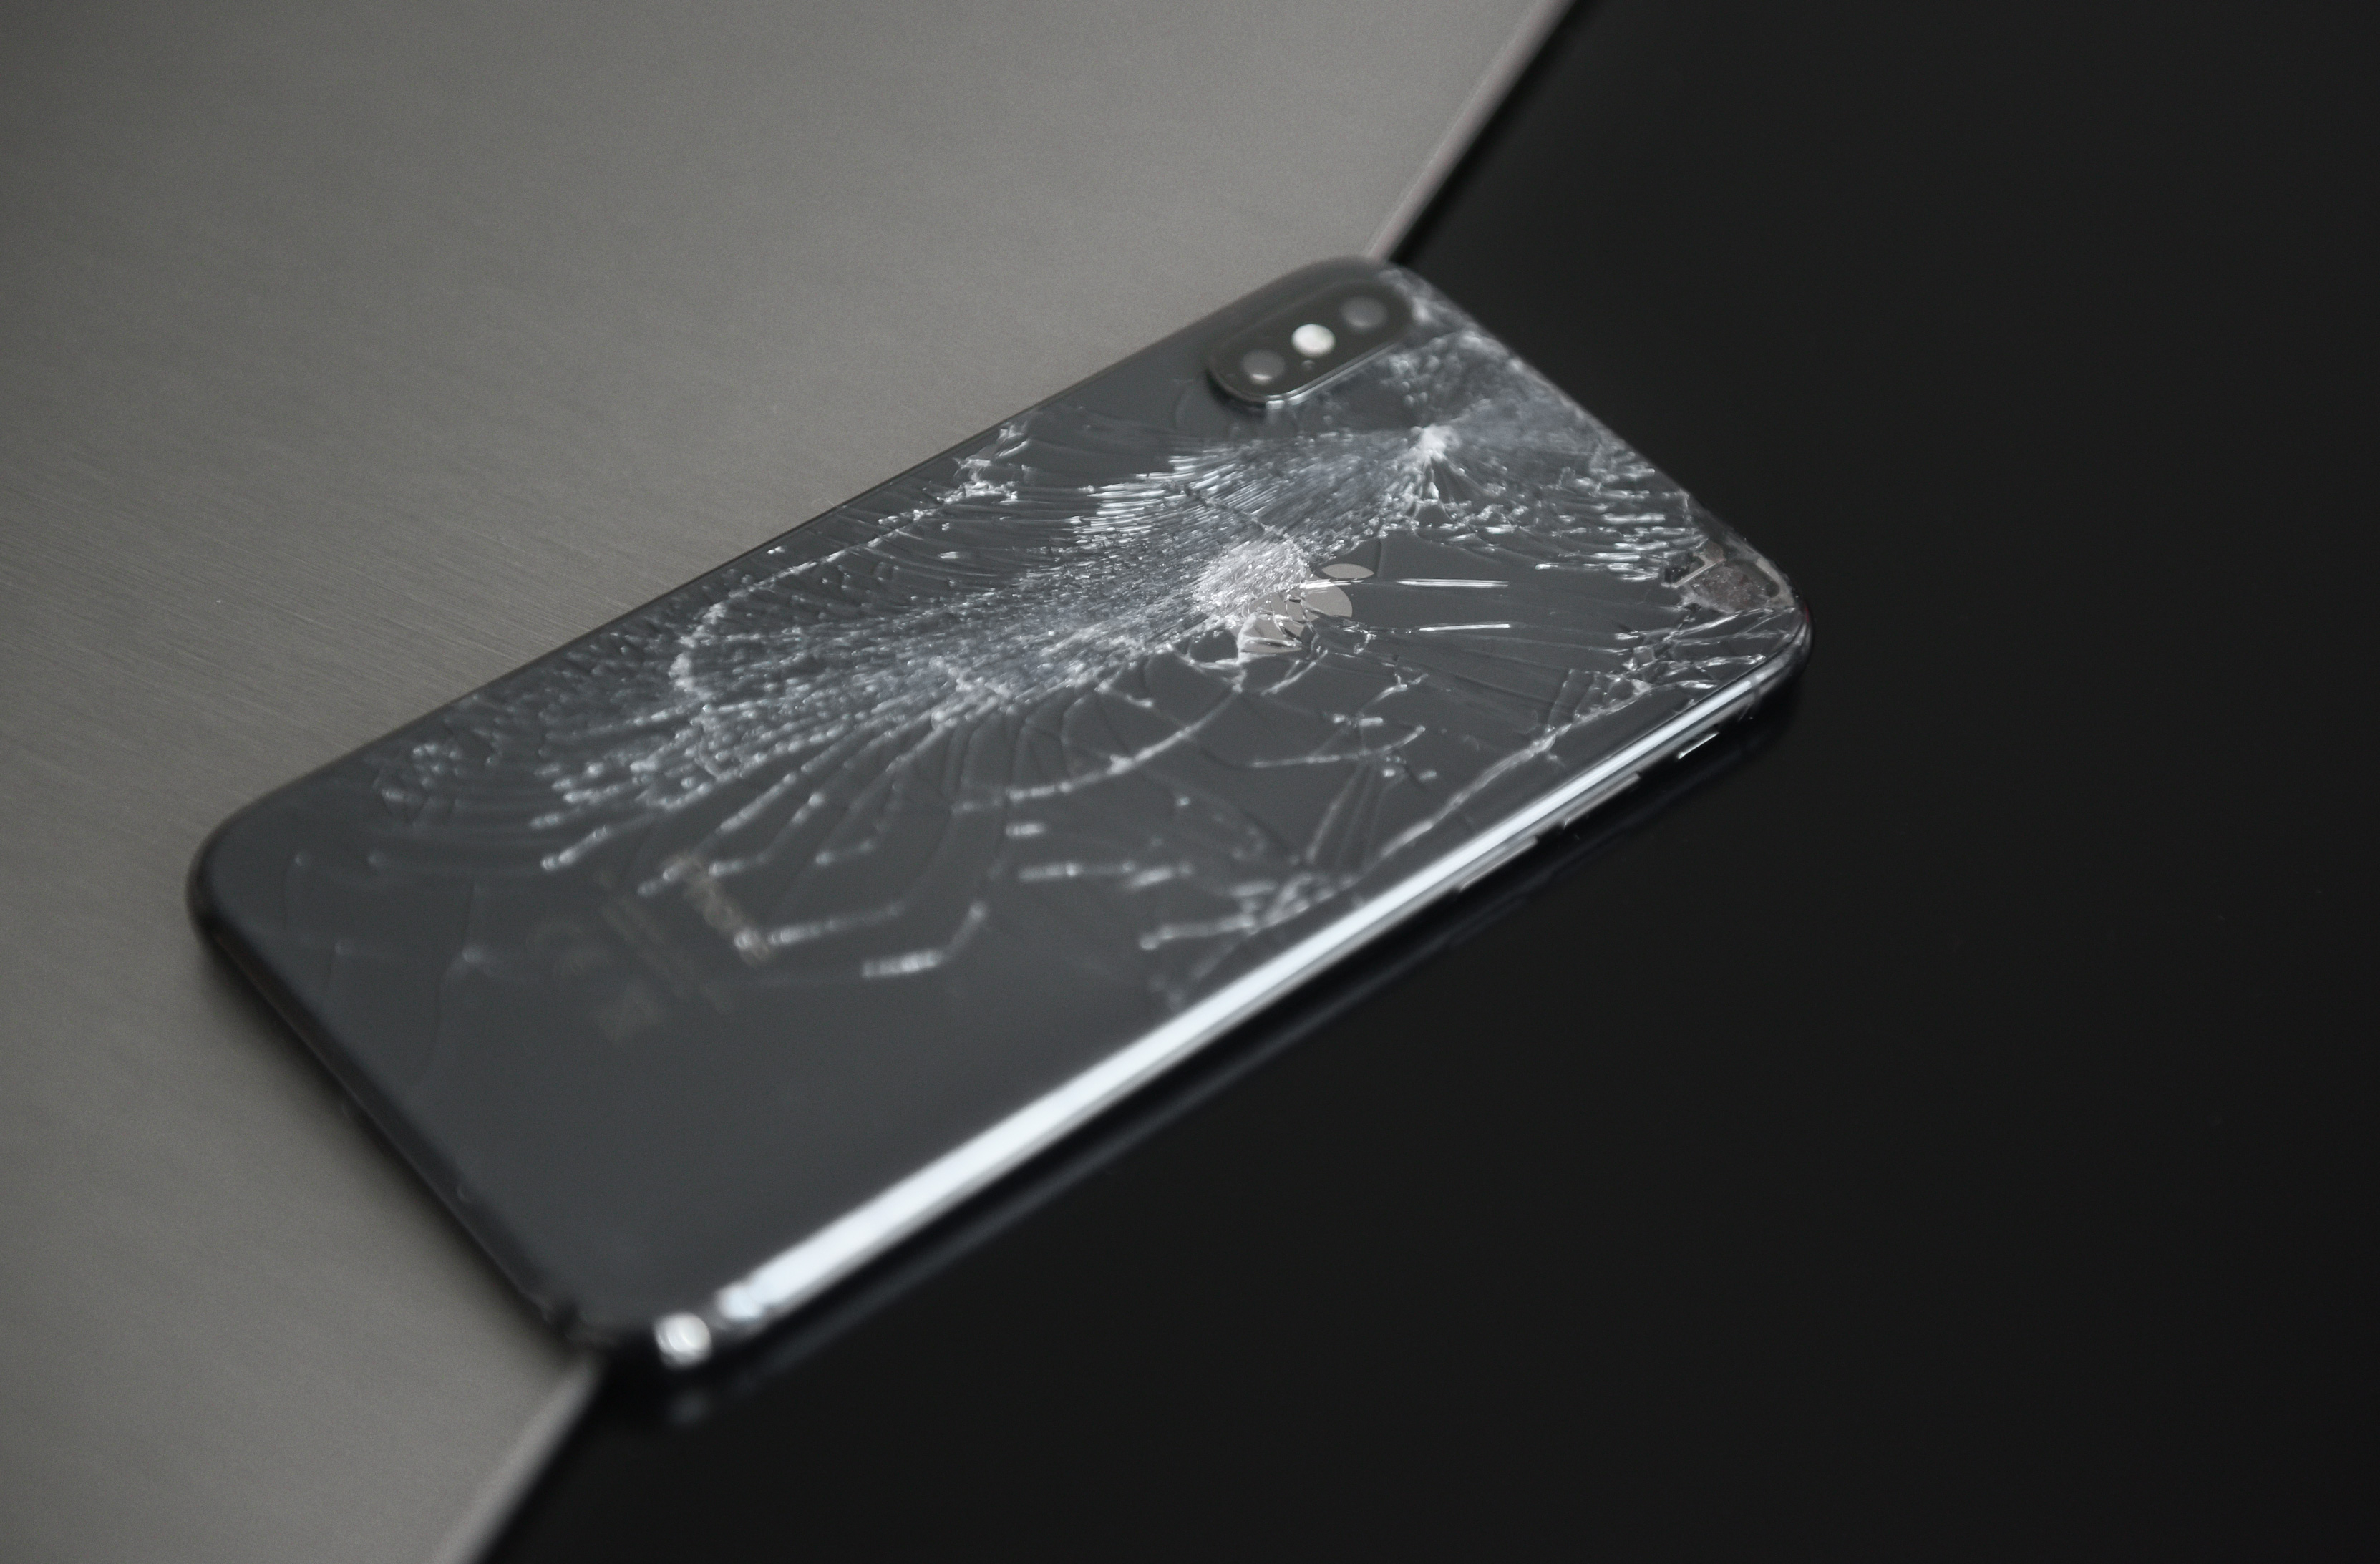 Iphone x back glass replacement cost australia